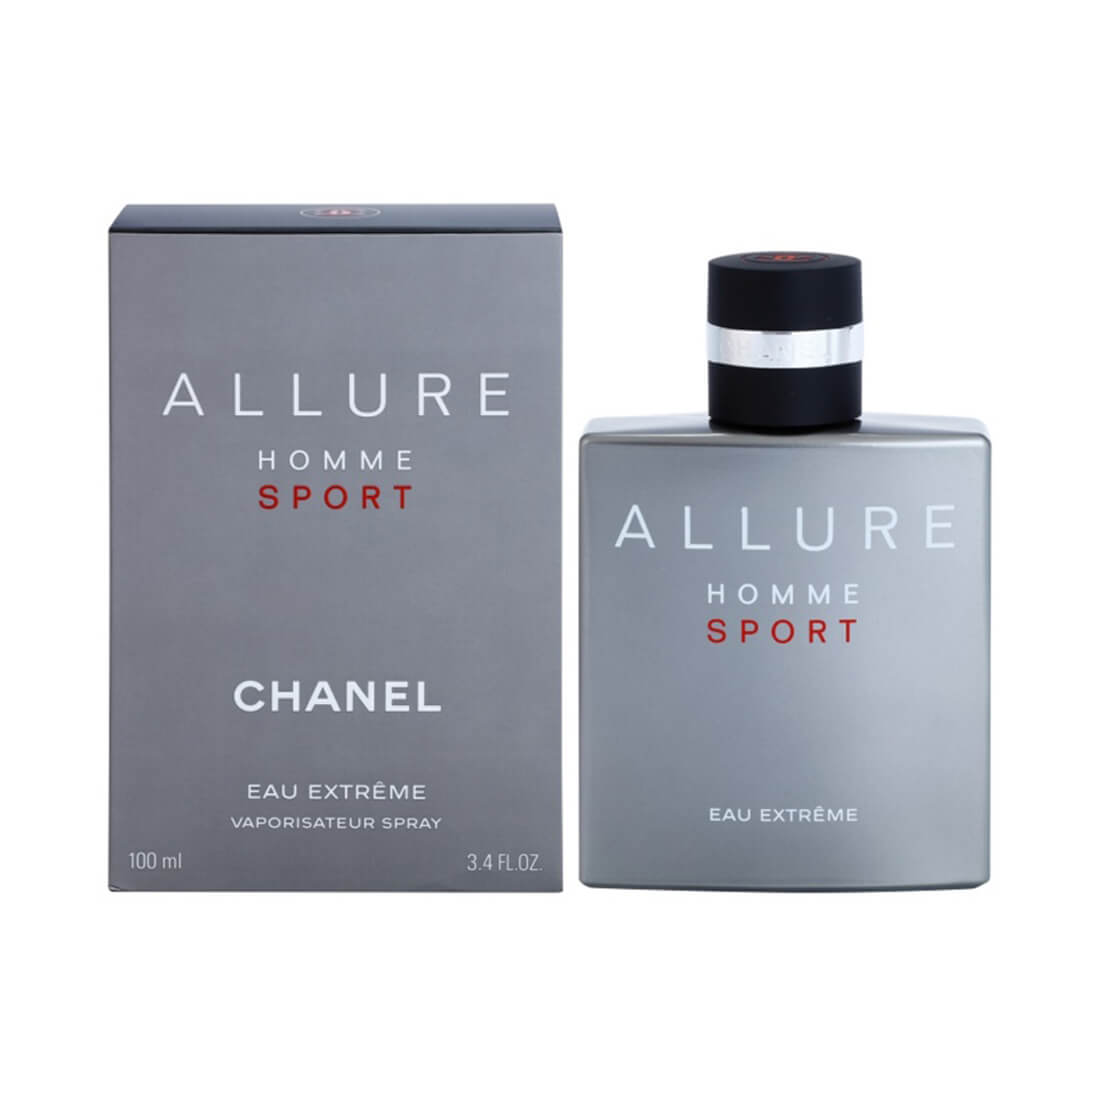 Chanel Allure Homme Sport Eau Extreme Eau De Perfume For Men 100ml